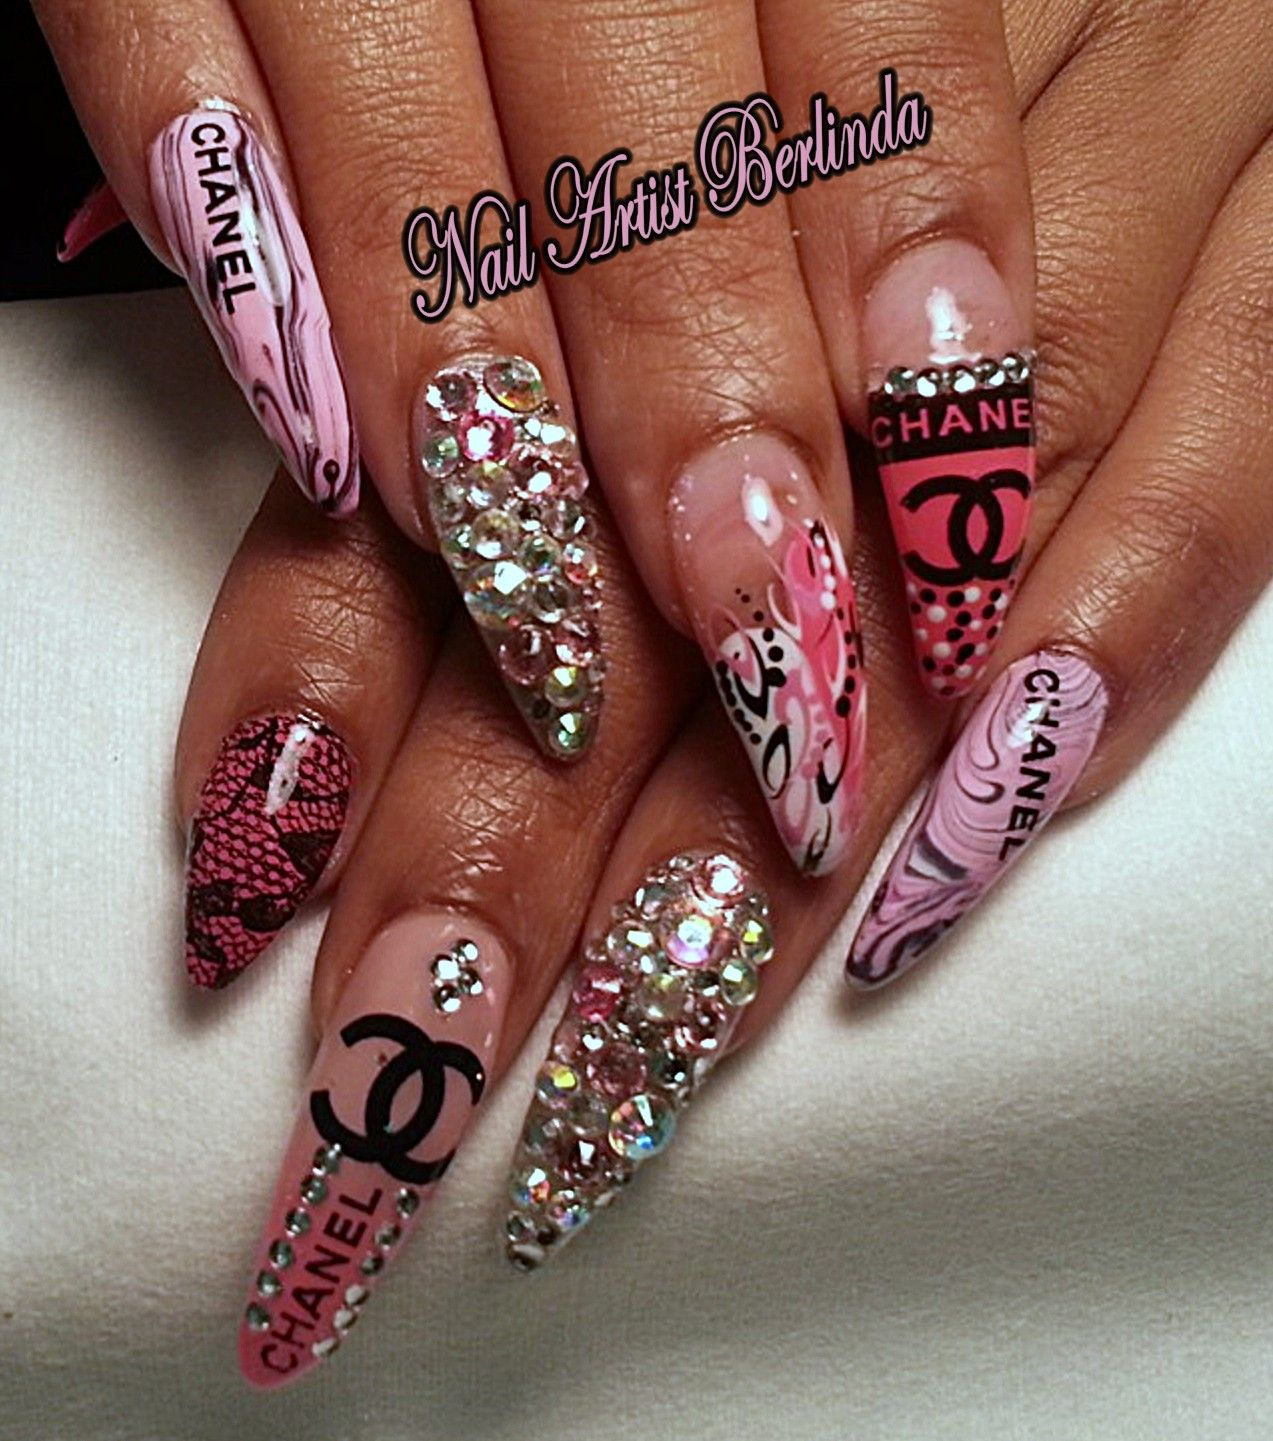 Chanel and Swarovski www.nailartistberlinda.com | Extravagant Nail ...